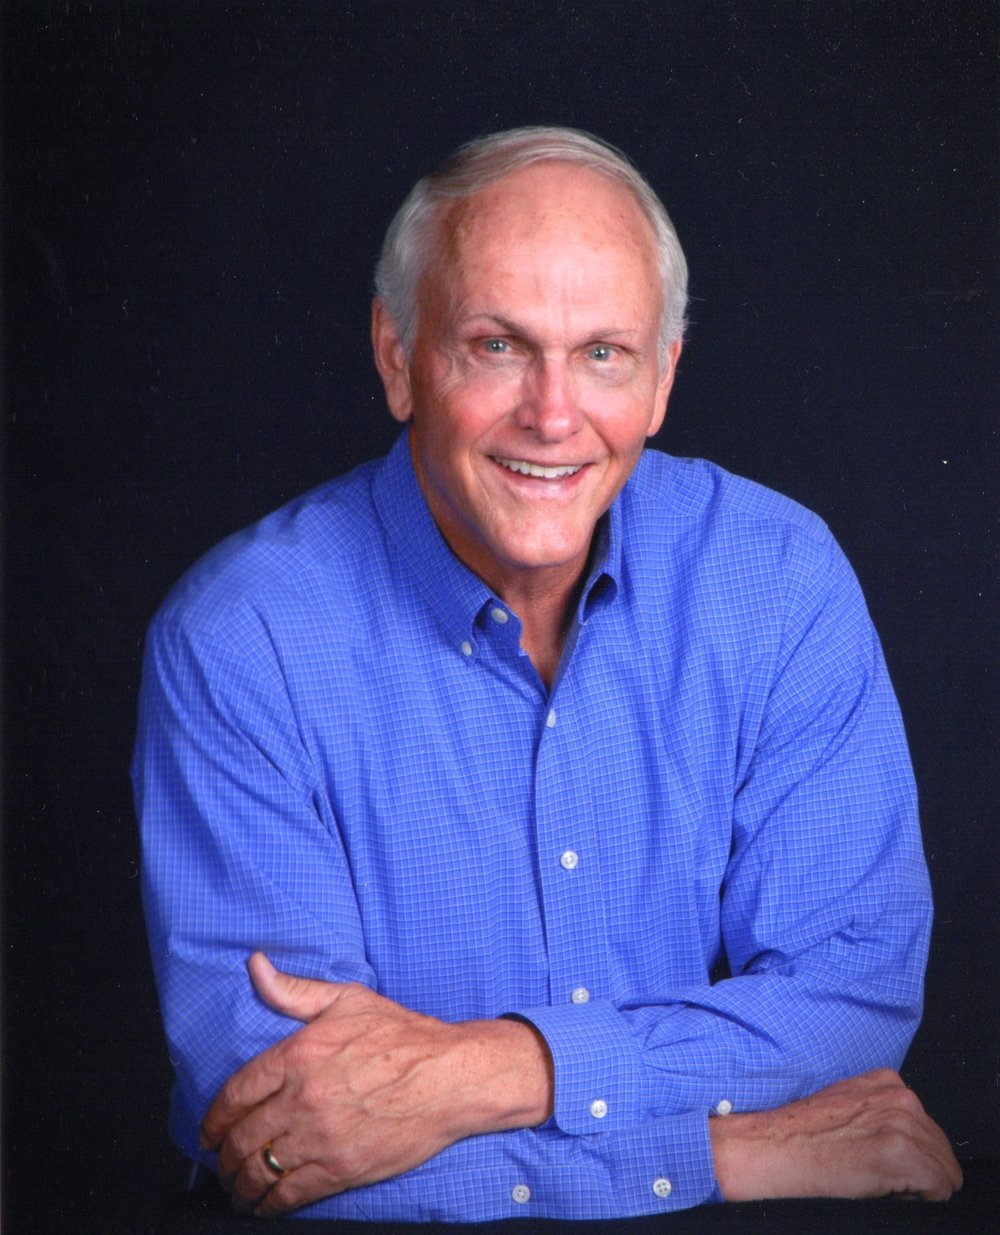 Larry Radney Photo.JPG.jpg